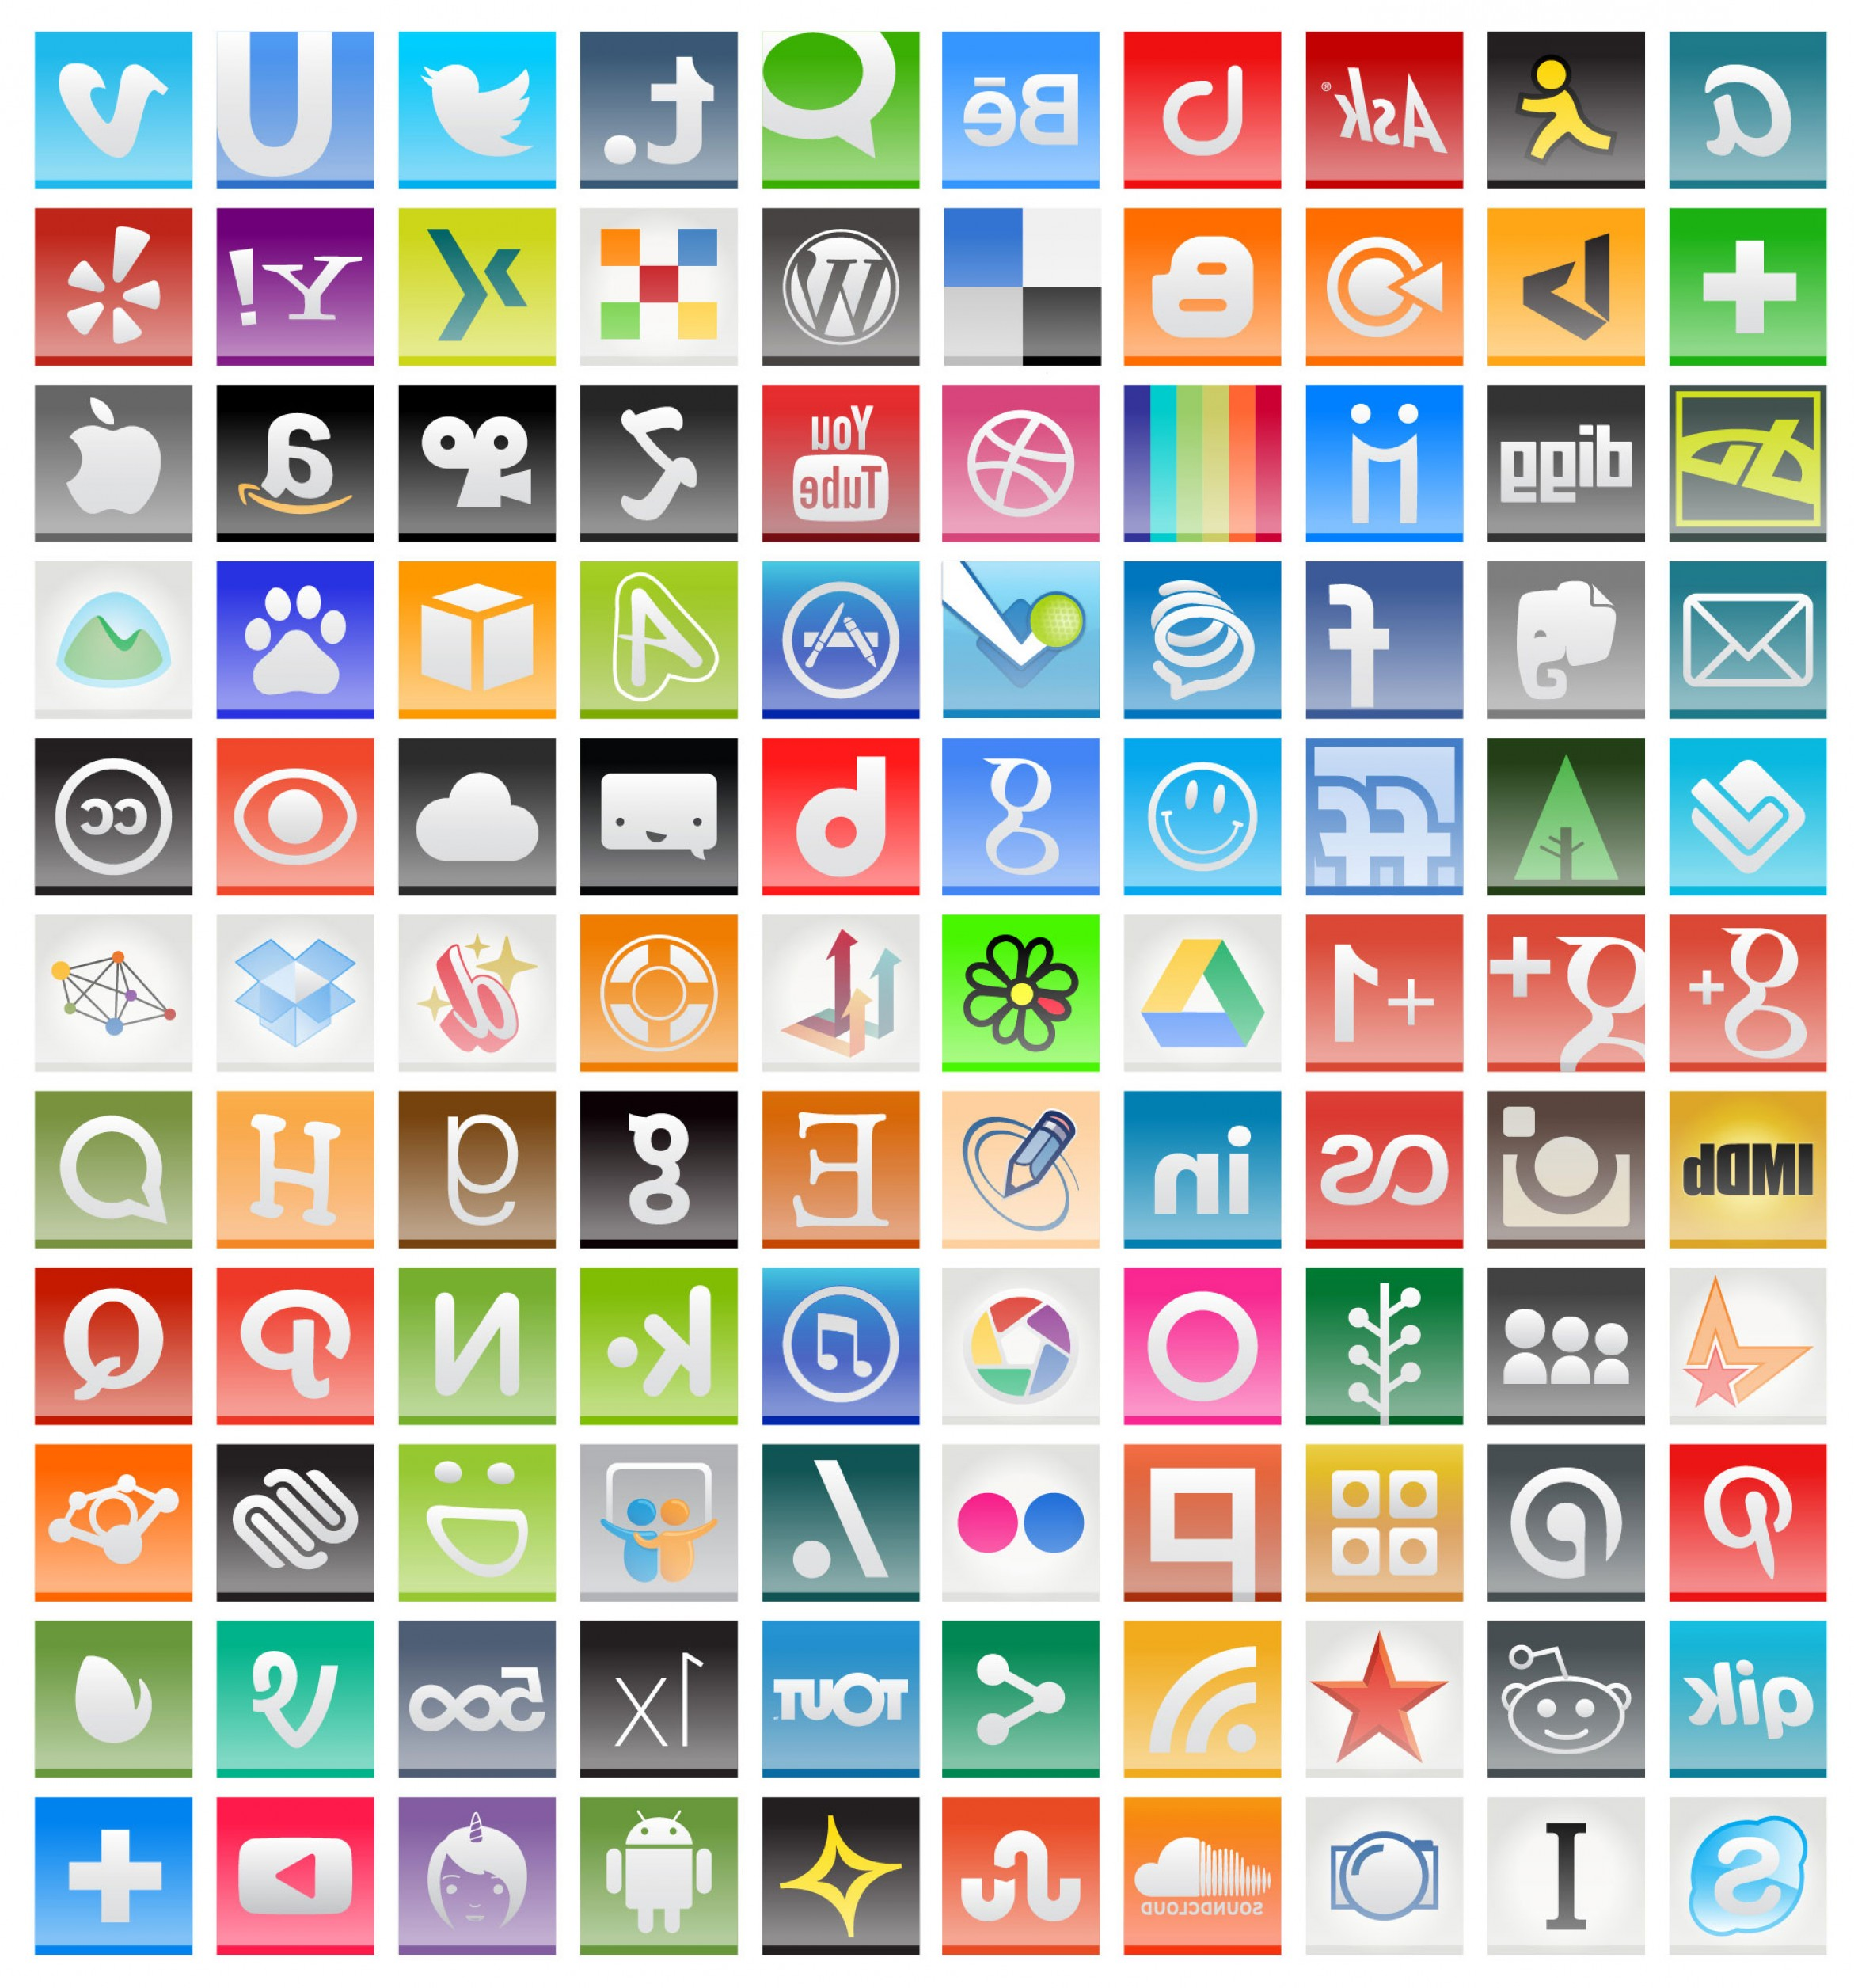 Vector Twitter Icon 2014: Free Social Media Icons For Vector Pngs